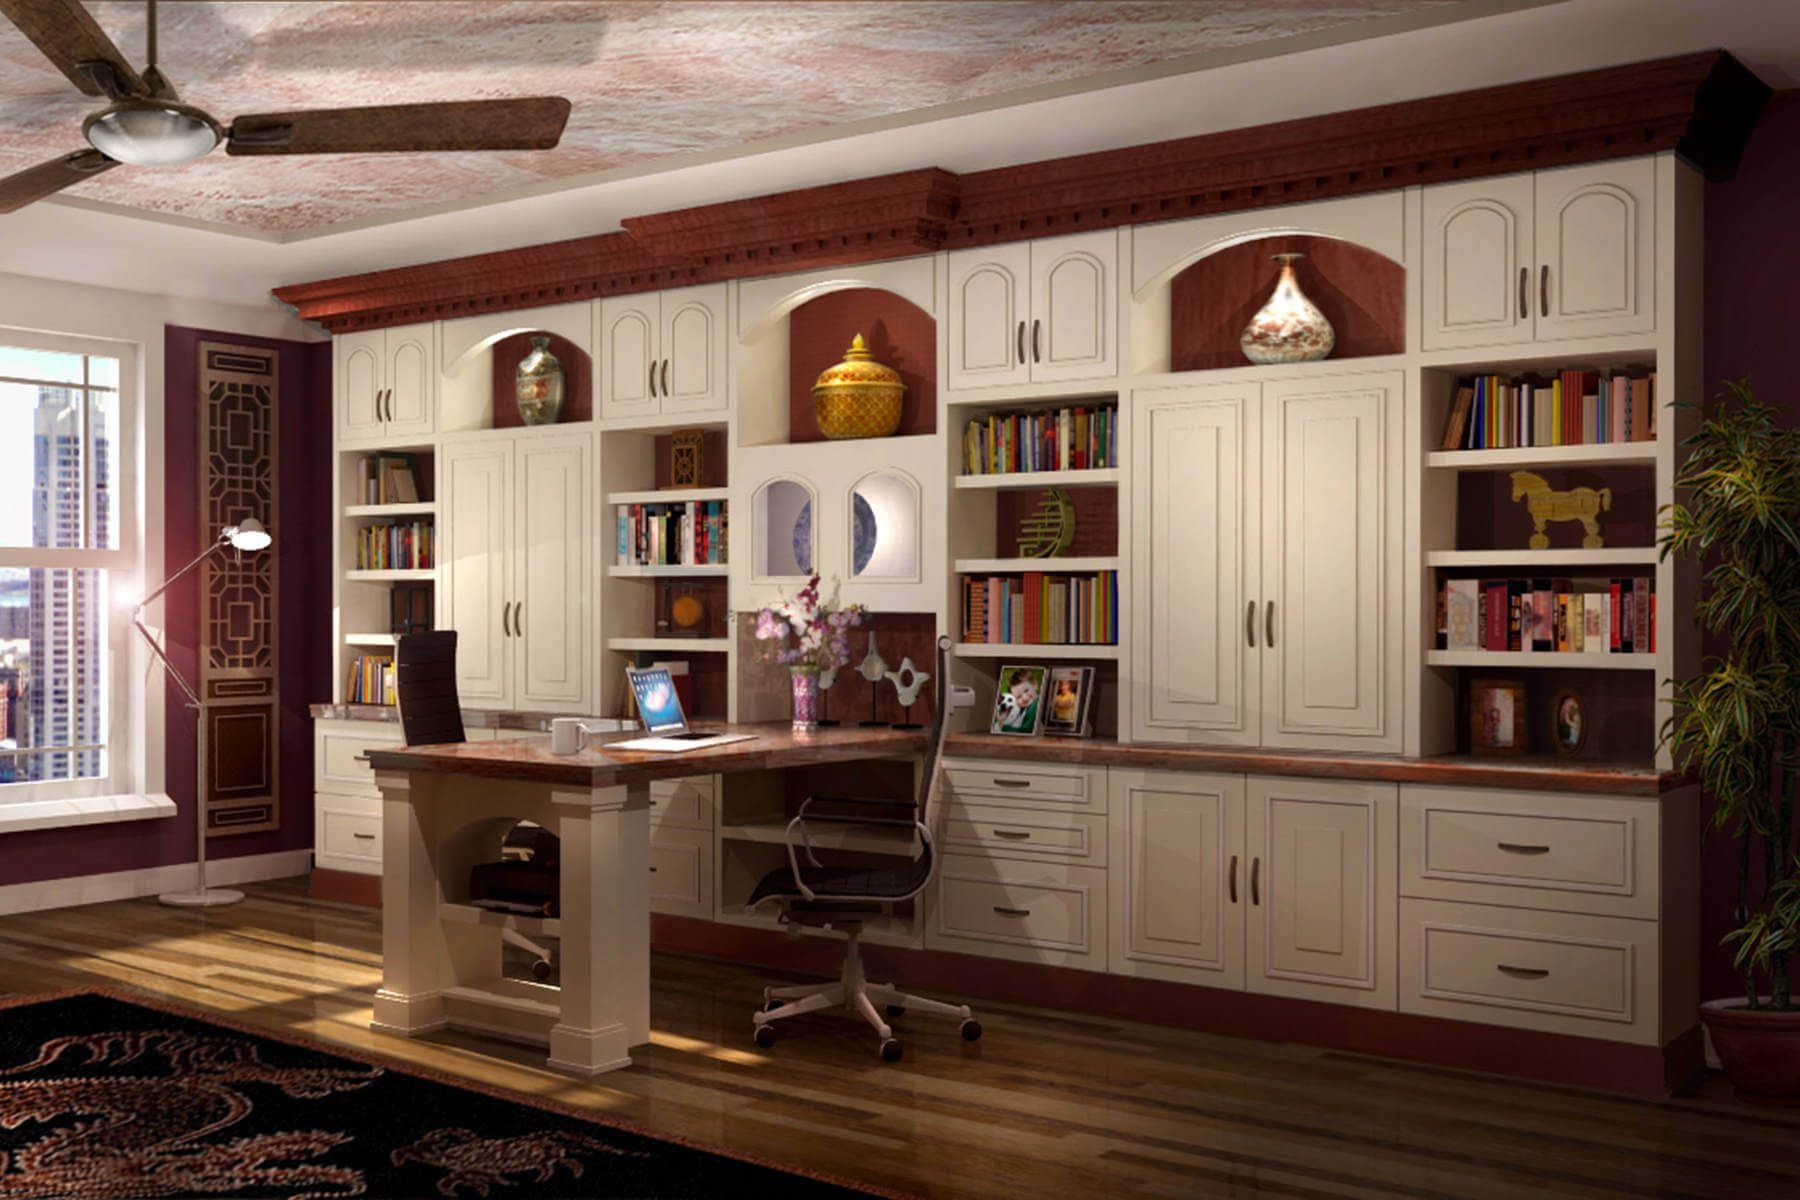 53 Really Great Home Office Ideas Photos Home Office Furniture Design Home Office Design Home Office